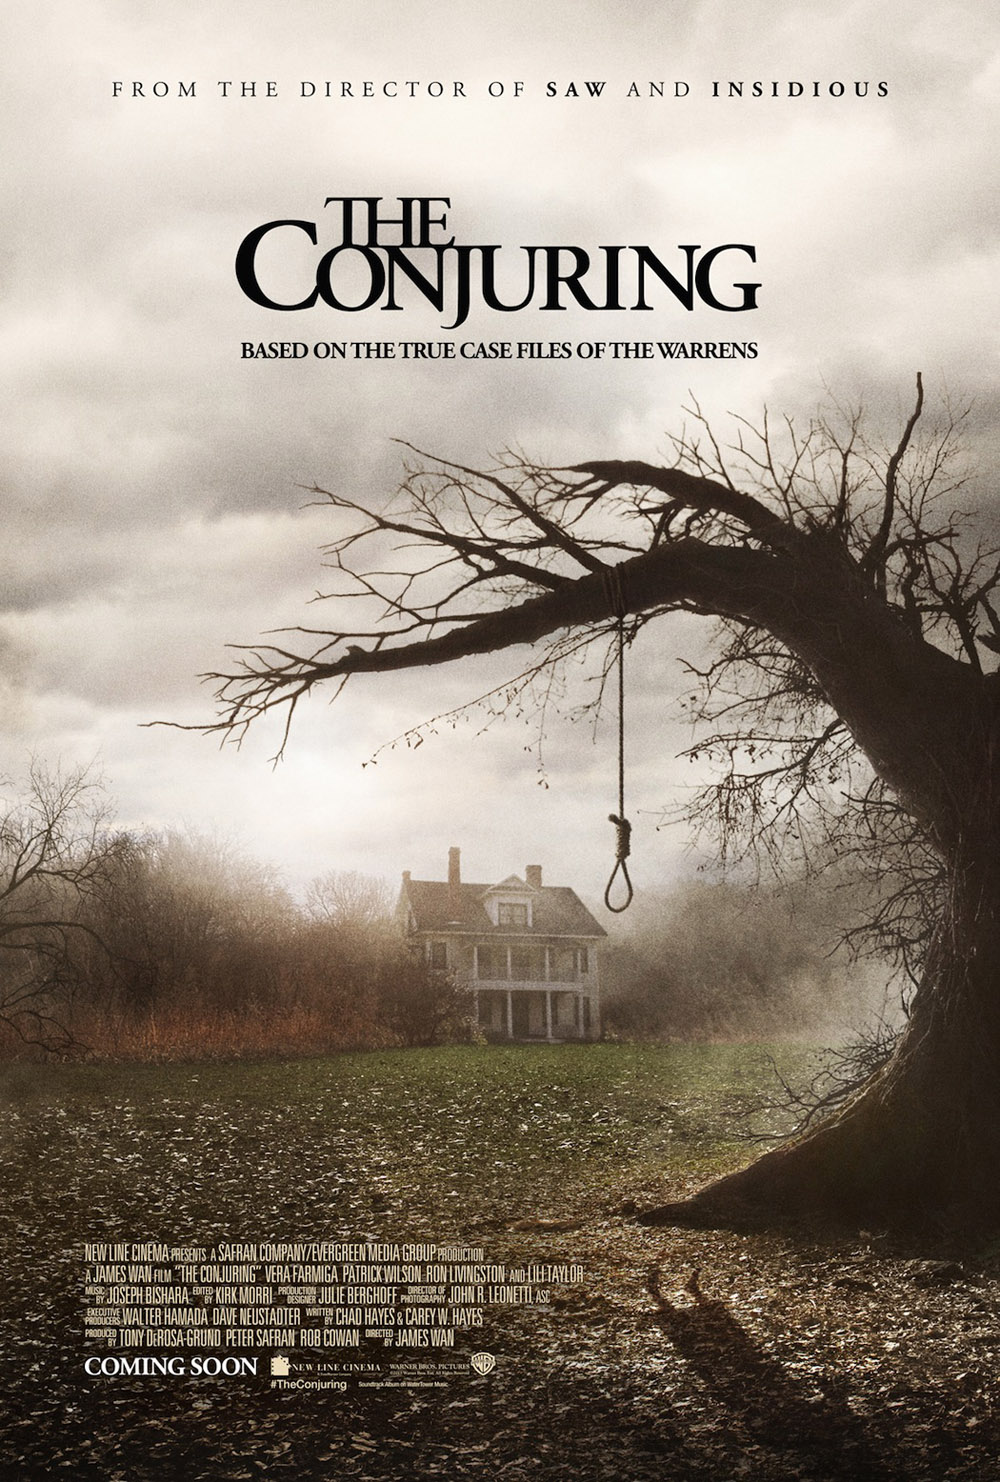 2.The Conjuring